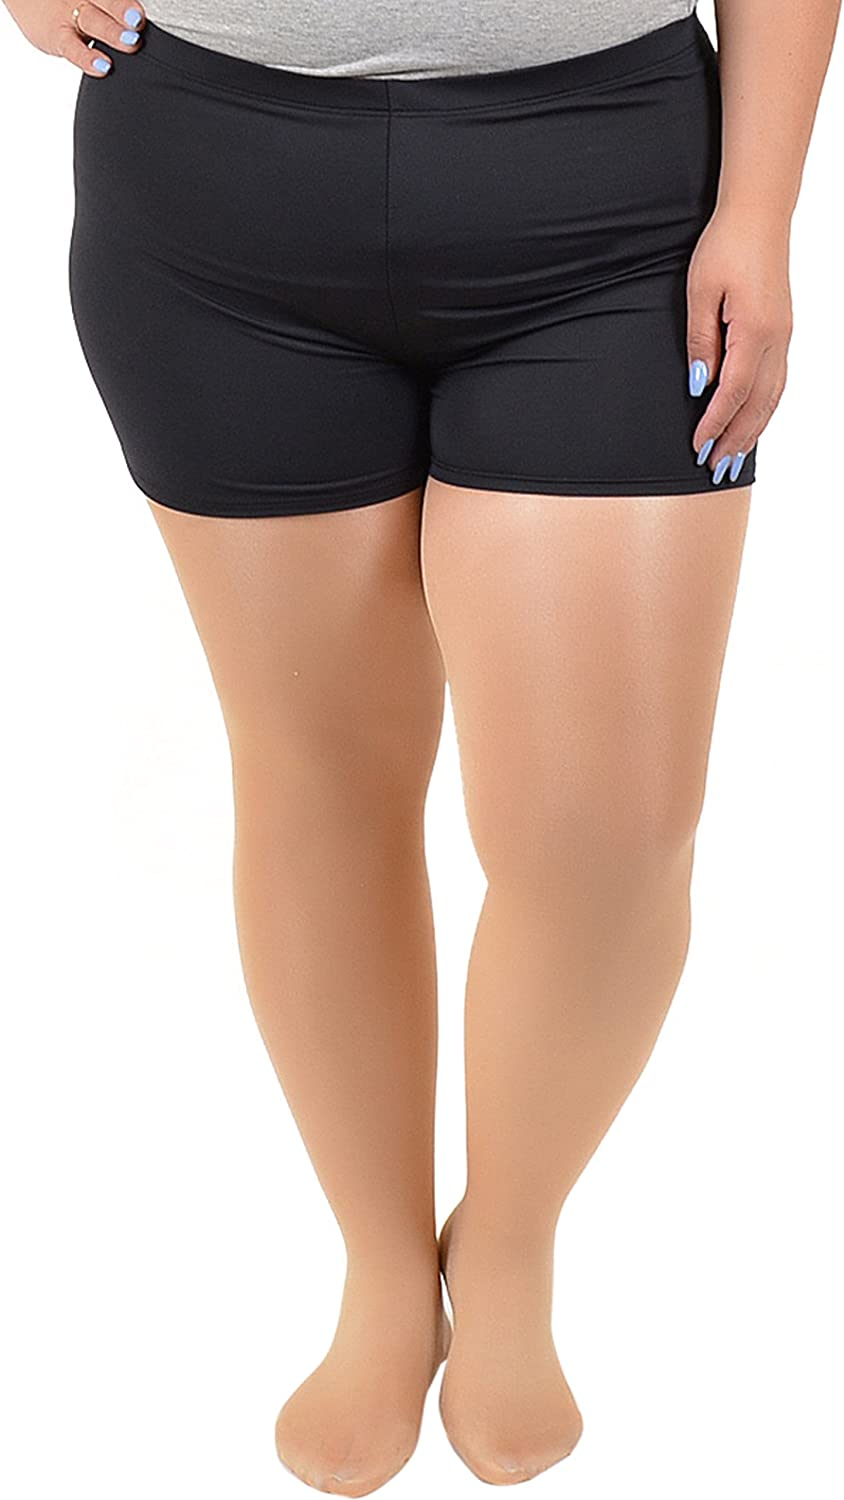 Stretch is Comfort Women's Plus Size NYLON SPANDEX Stretch Booty Shorts